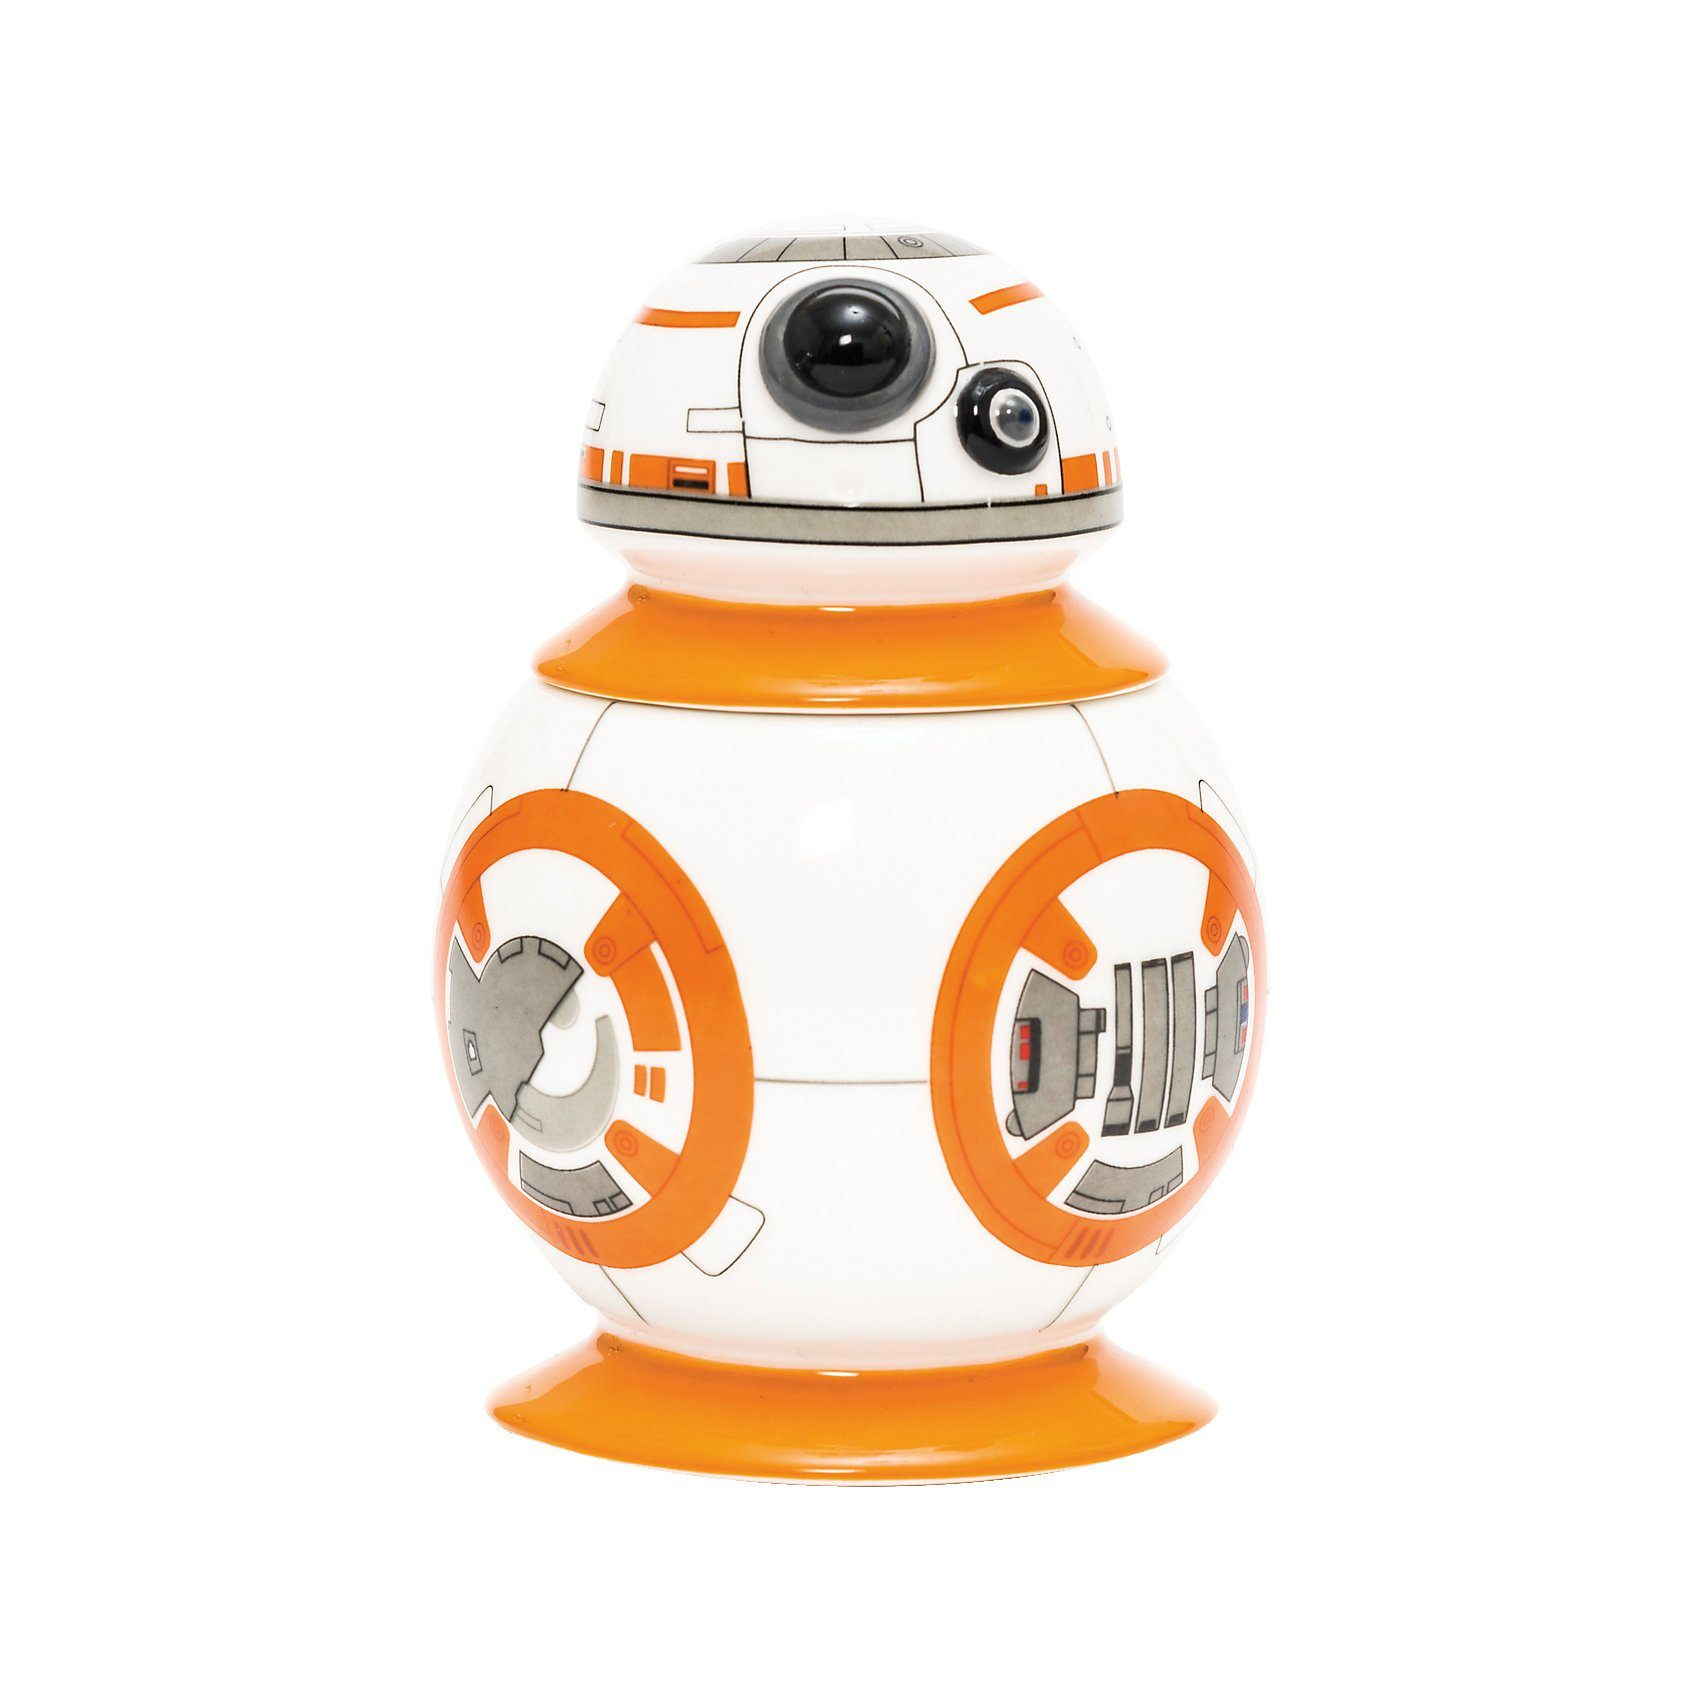 JOY TOY Eierbecher Kermaik BB-8